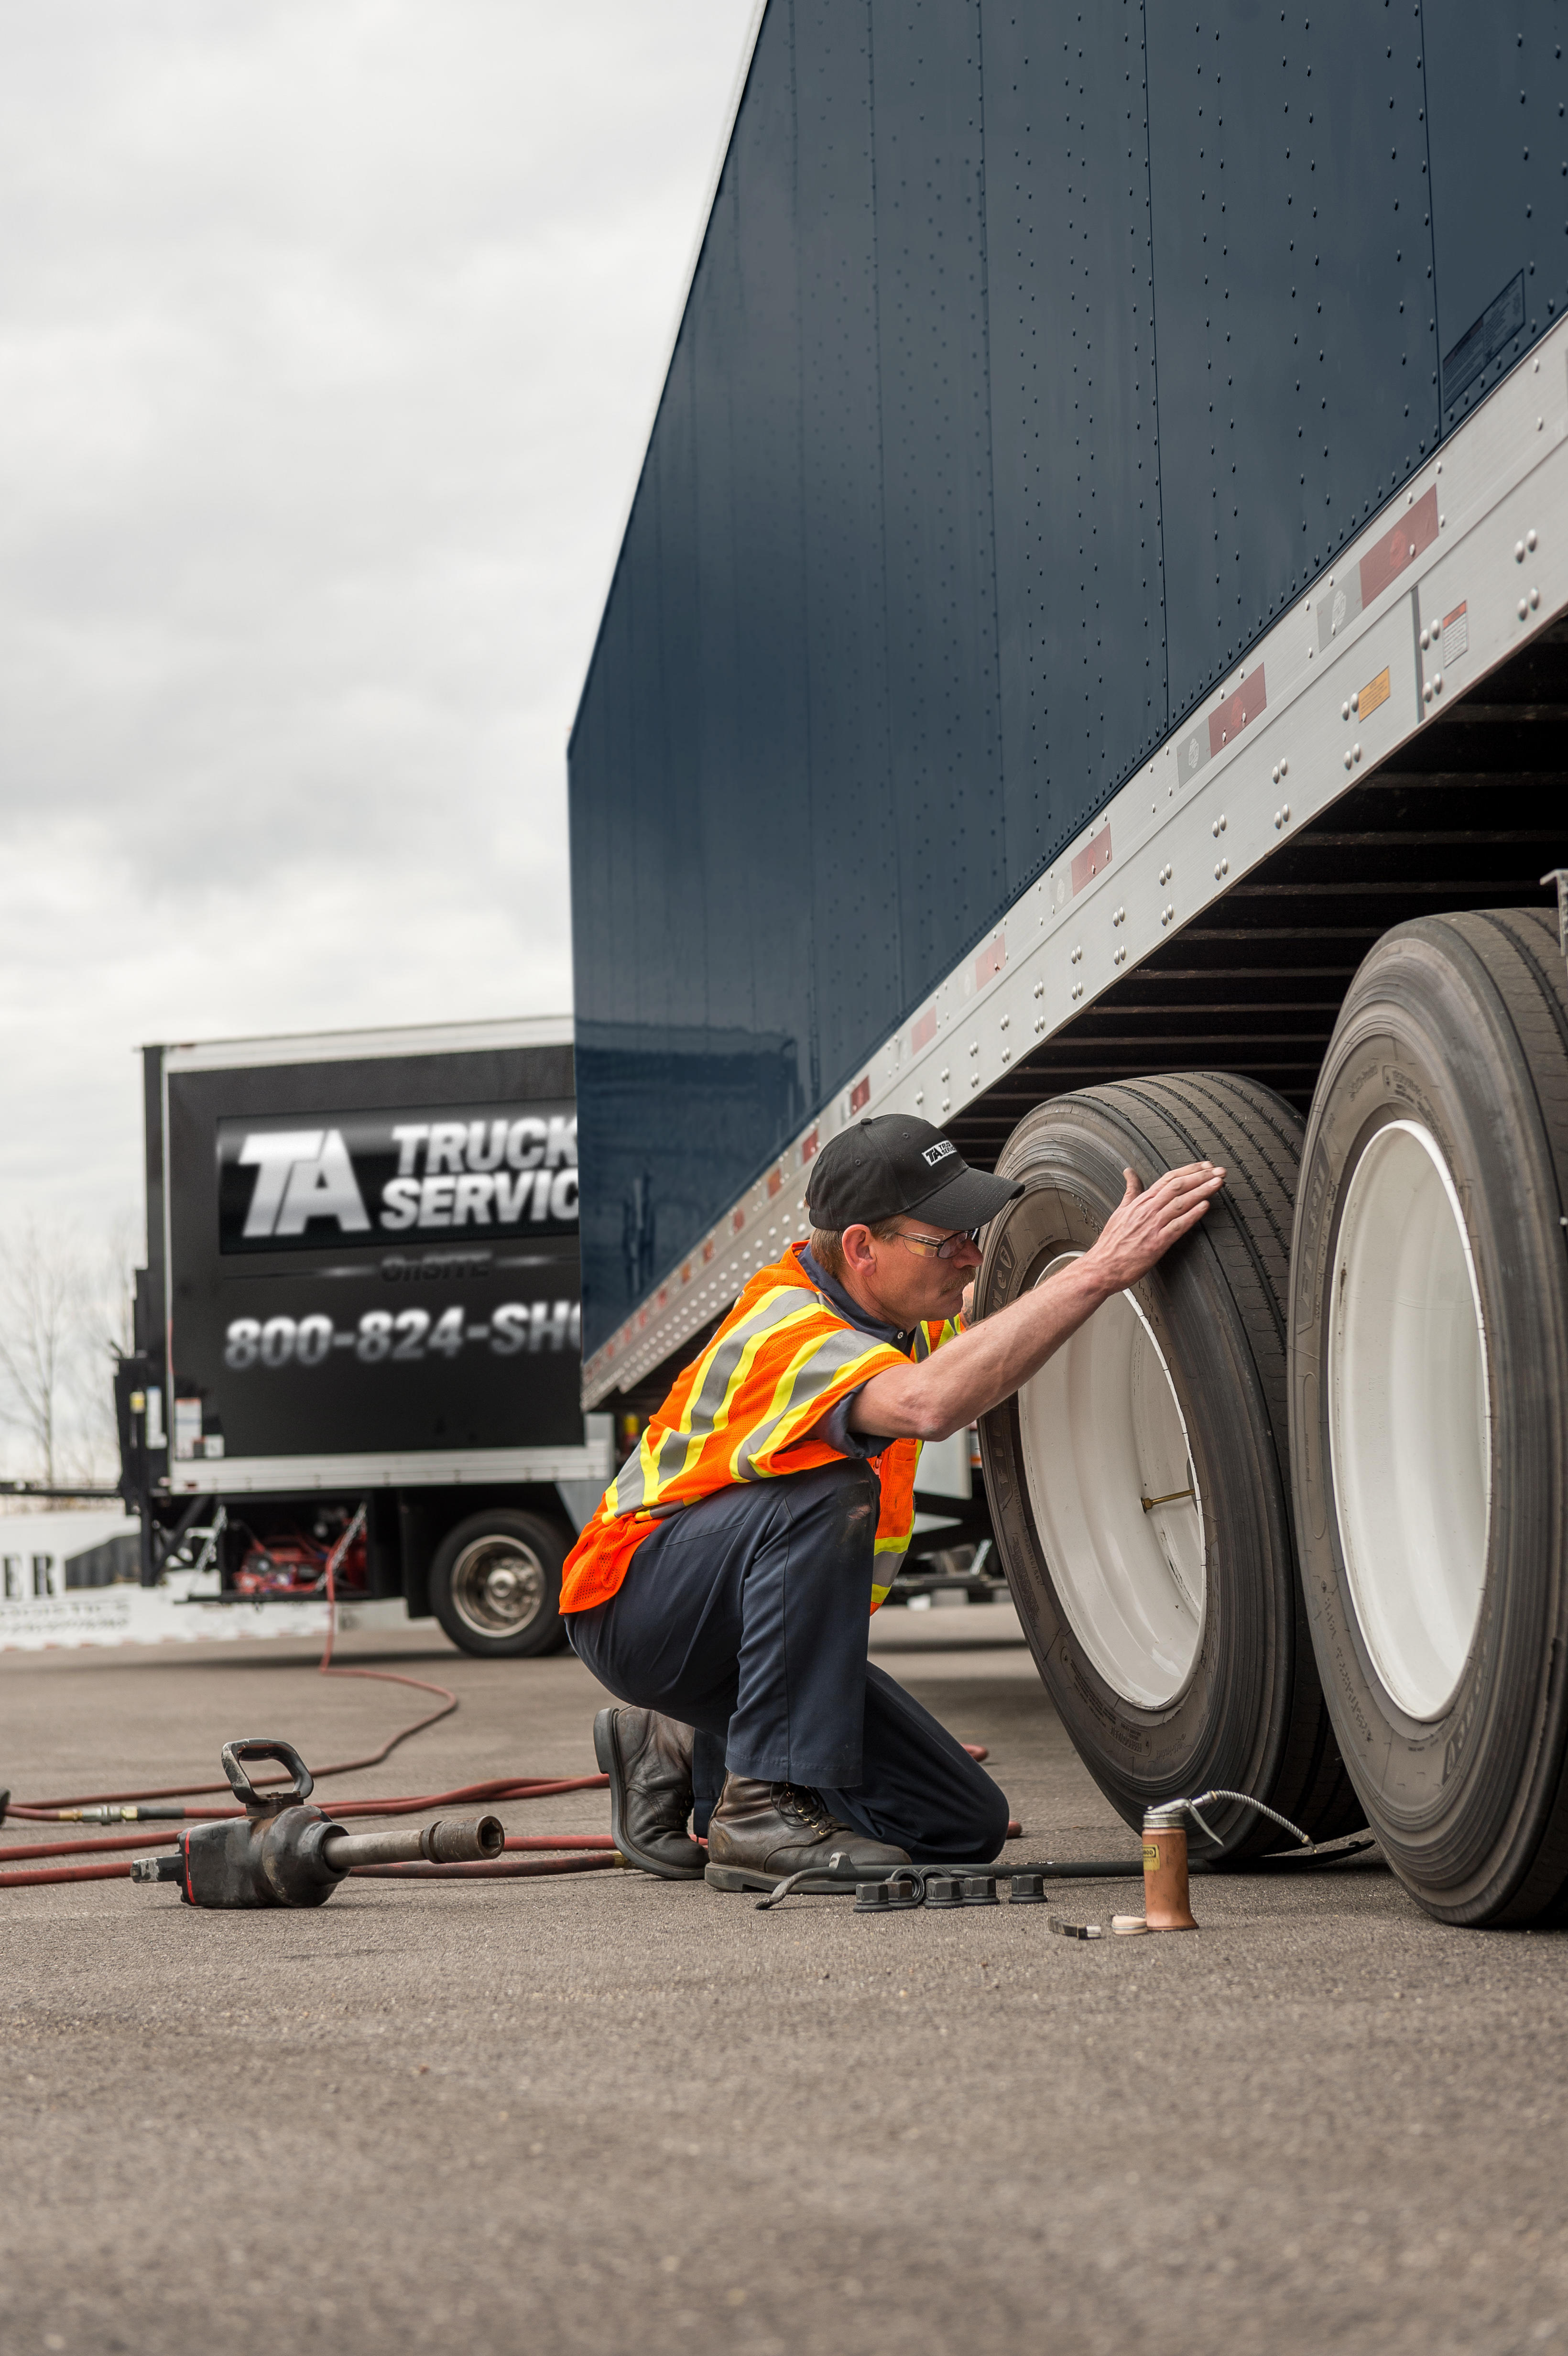 TA Truck Service OnSITE makes managing your fleet's maintenance and repairs easy, by bringing MORE: Solutions right to the tractors and trailers staged at your lot or distribution center.